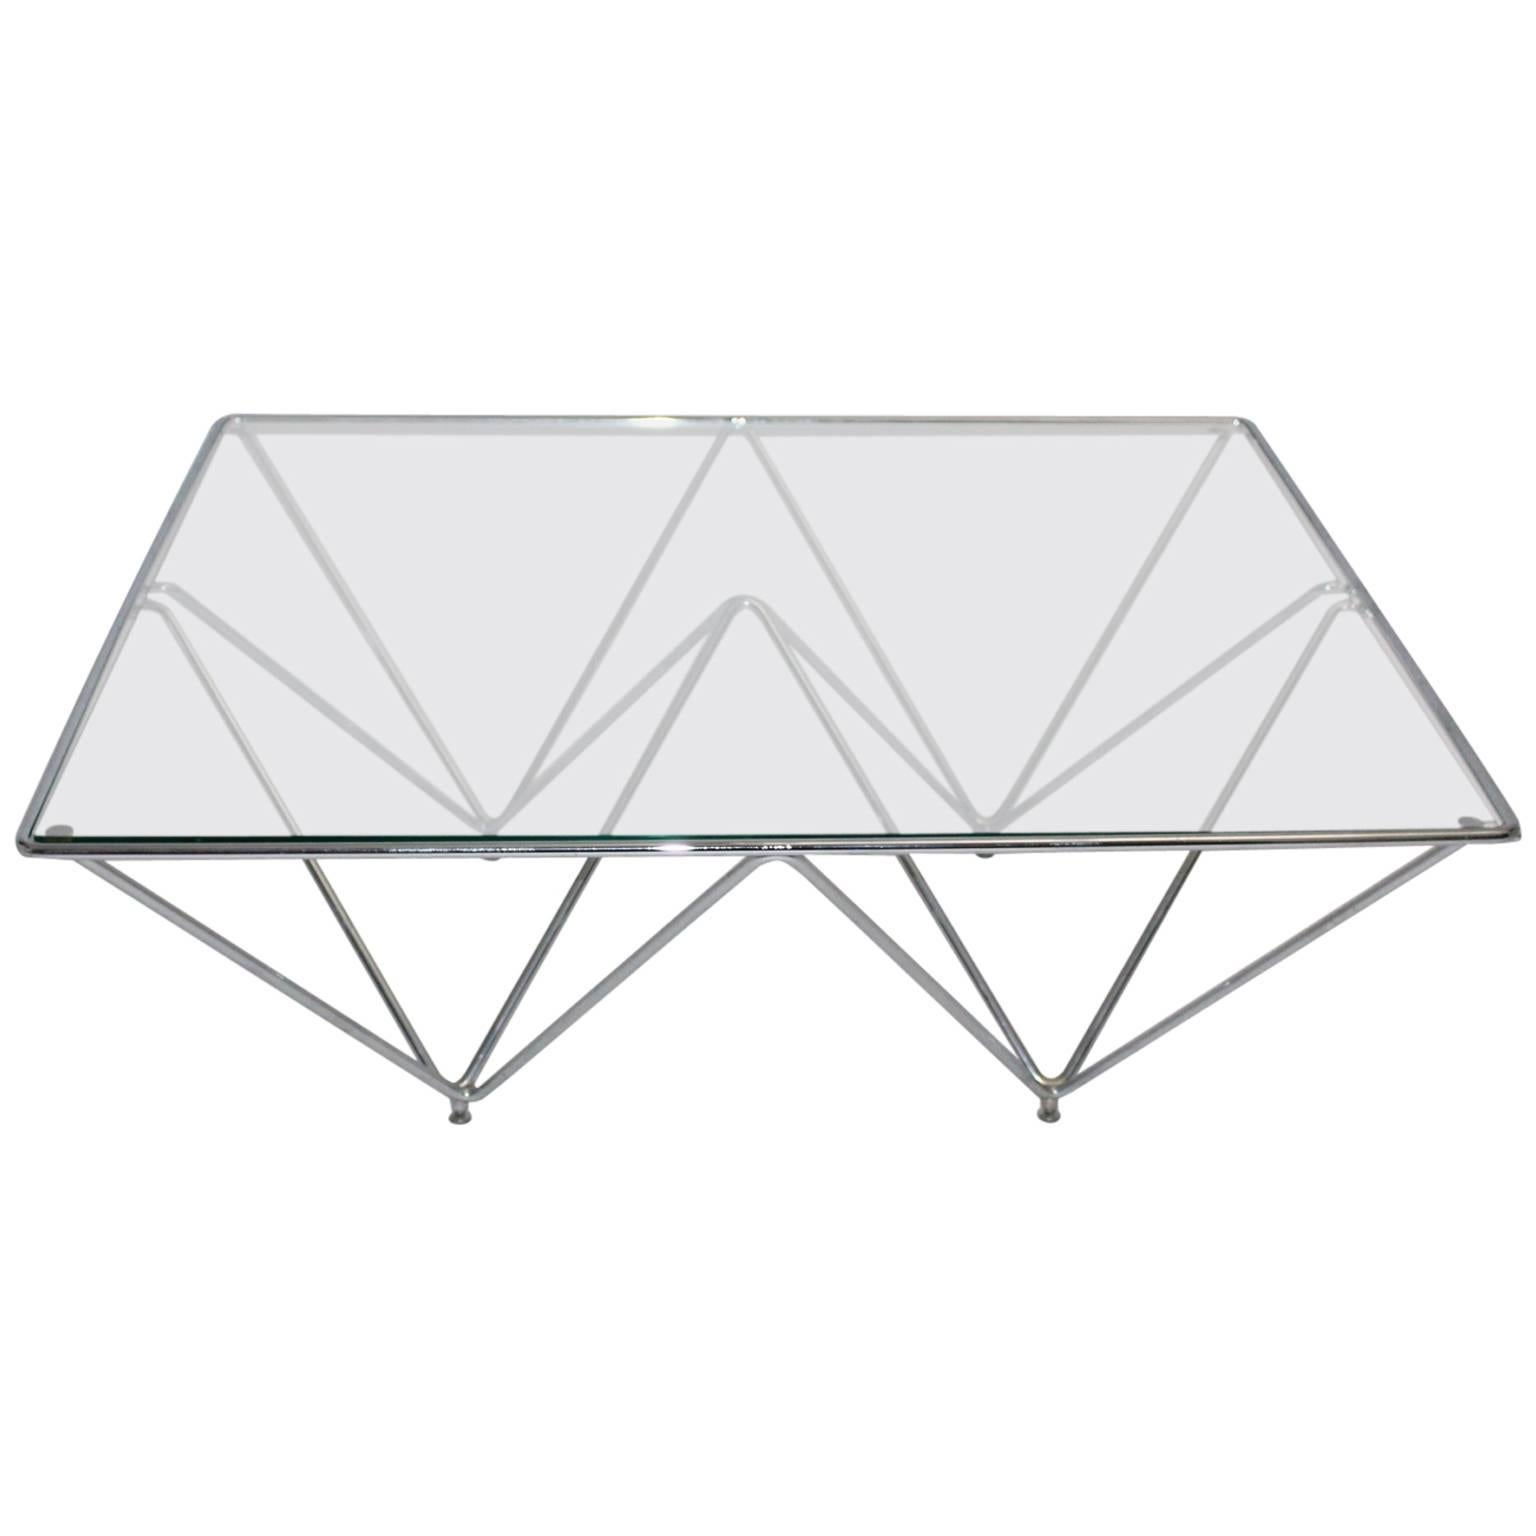 Modern Vintage Metal Glass Coffee Table Sofa Table Paolo Piva Style Italy 1980s